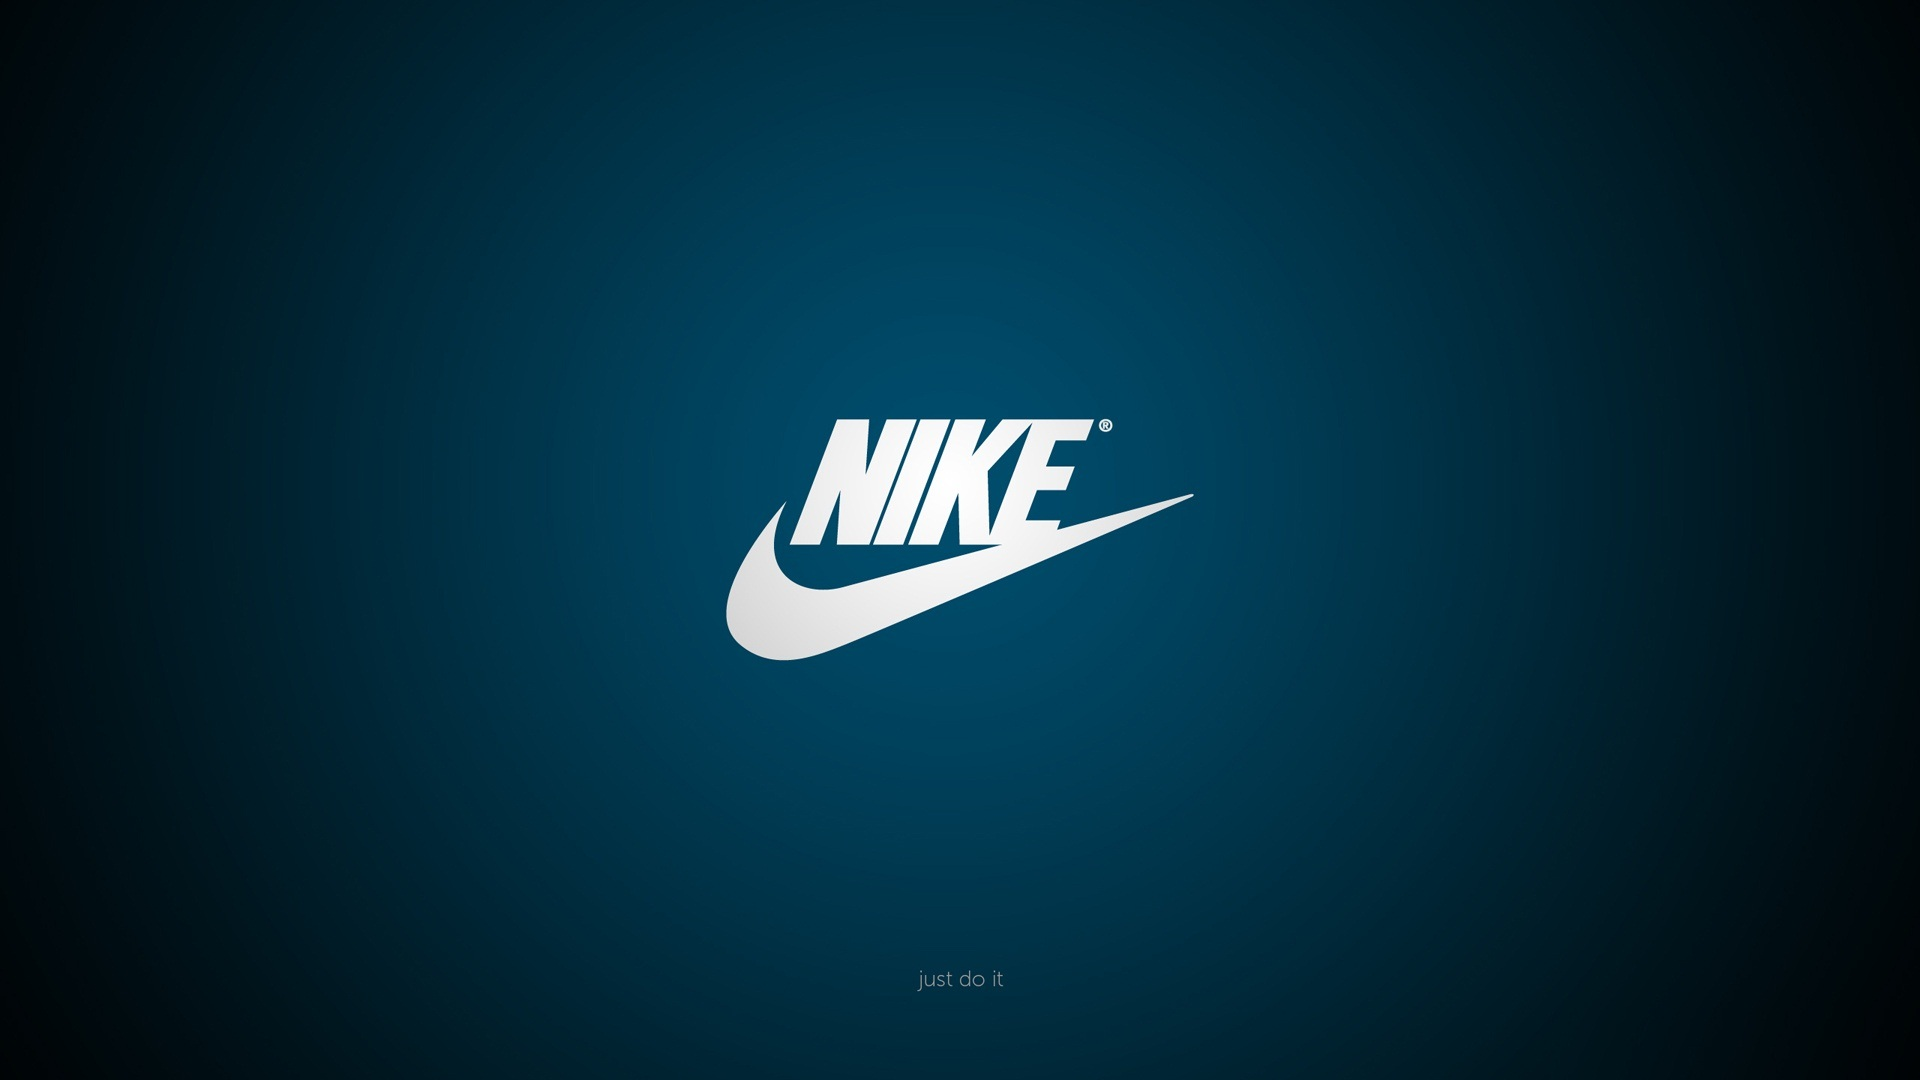 Nike Wallpapers Hd Nike Wallpapers 1280x1024 Nike Wallpapers 1920x1080